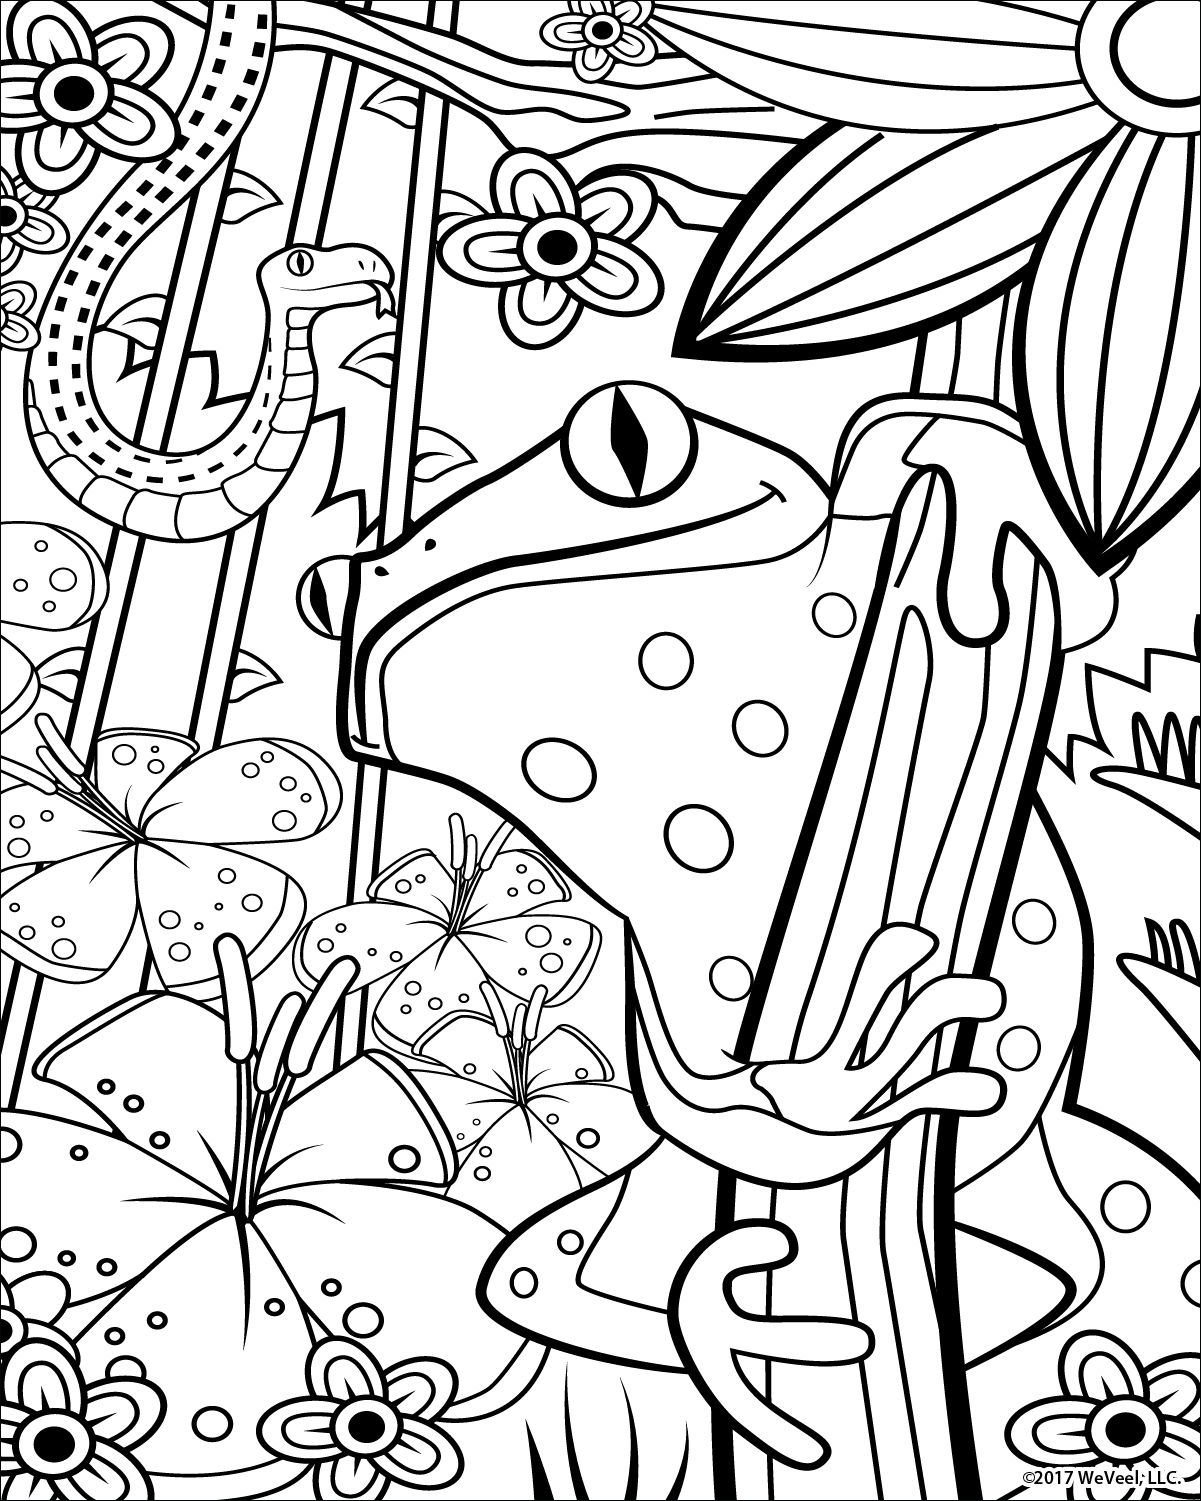 Coloring Pages Sea Life Jungle Coloring Pages Coloring Pages Cute Coloring Pages